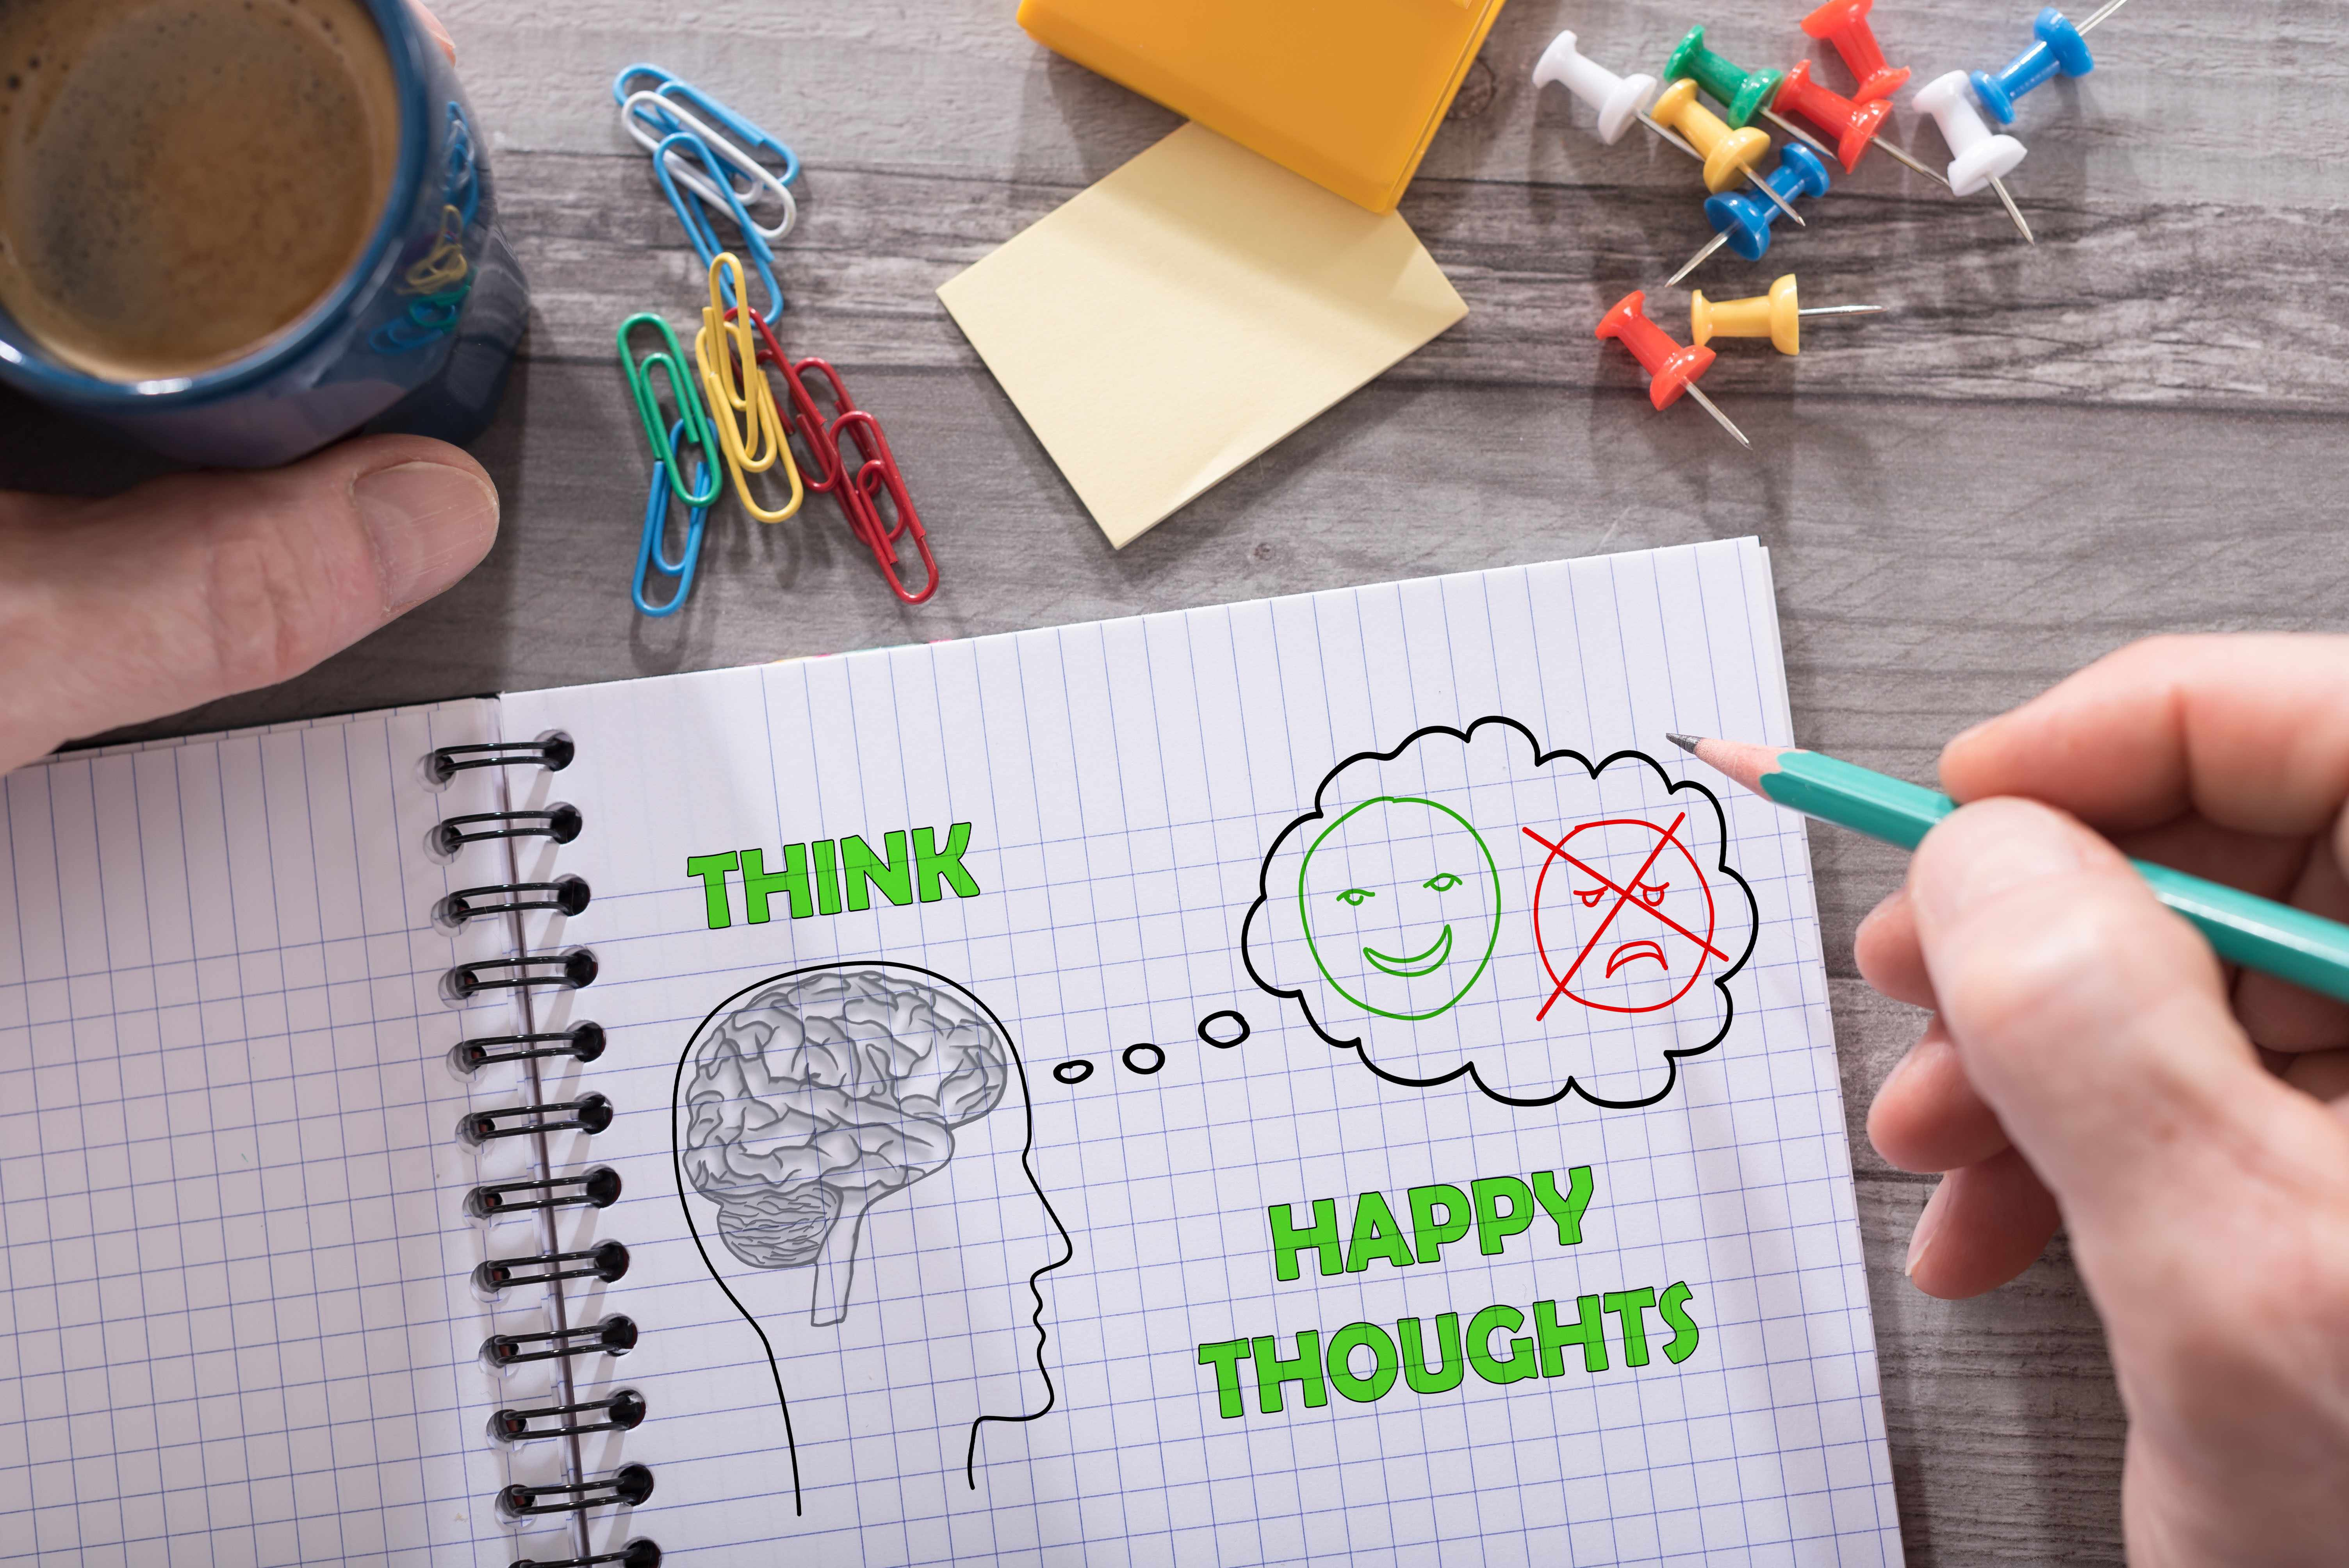 a notebook paper with a drawing of a human head and brain with writing to think happy thoughts